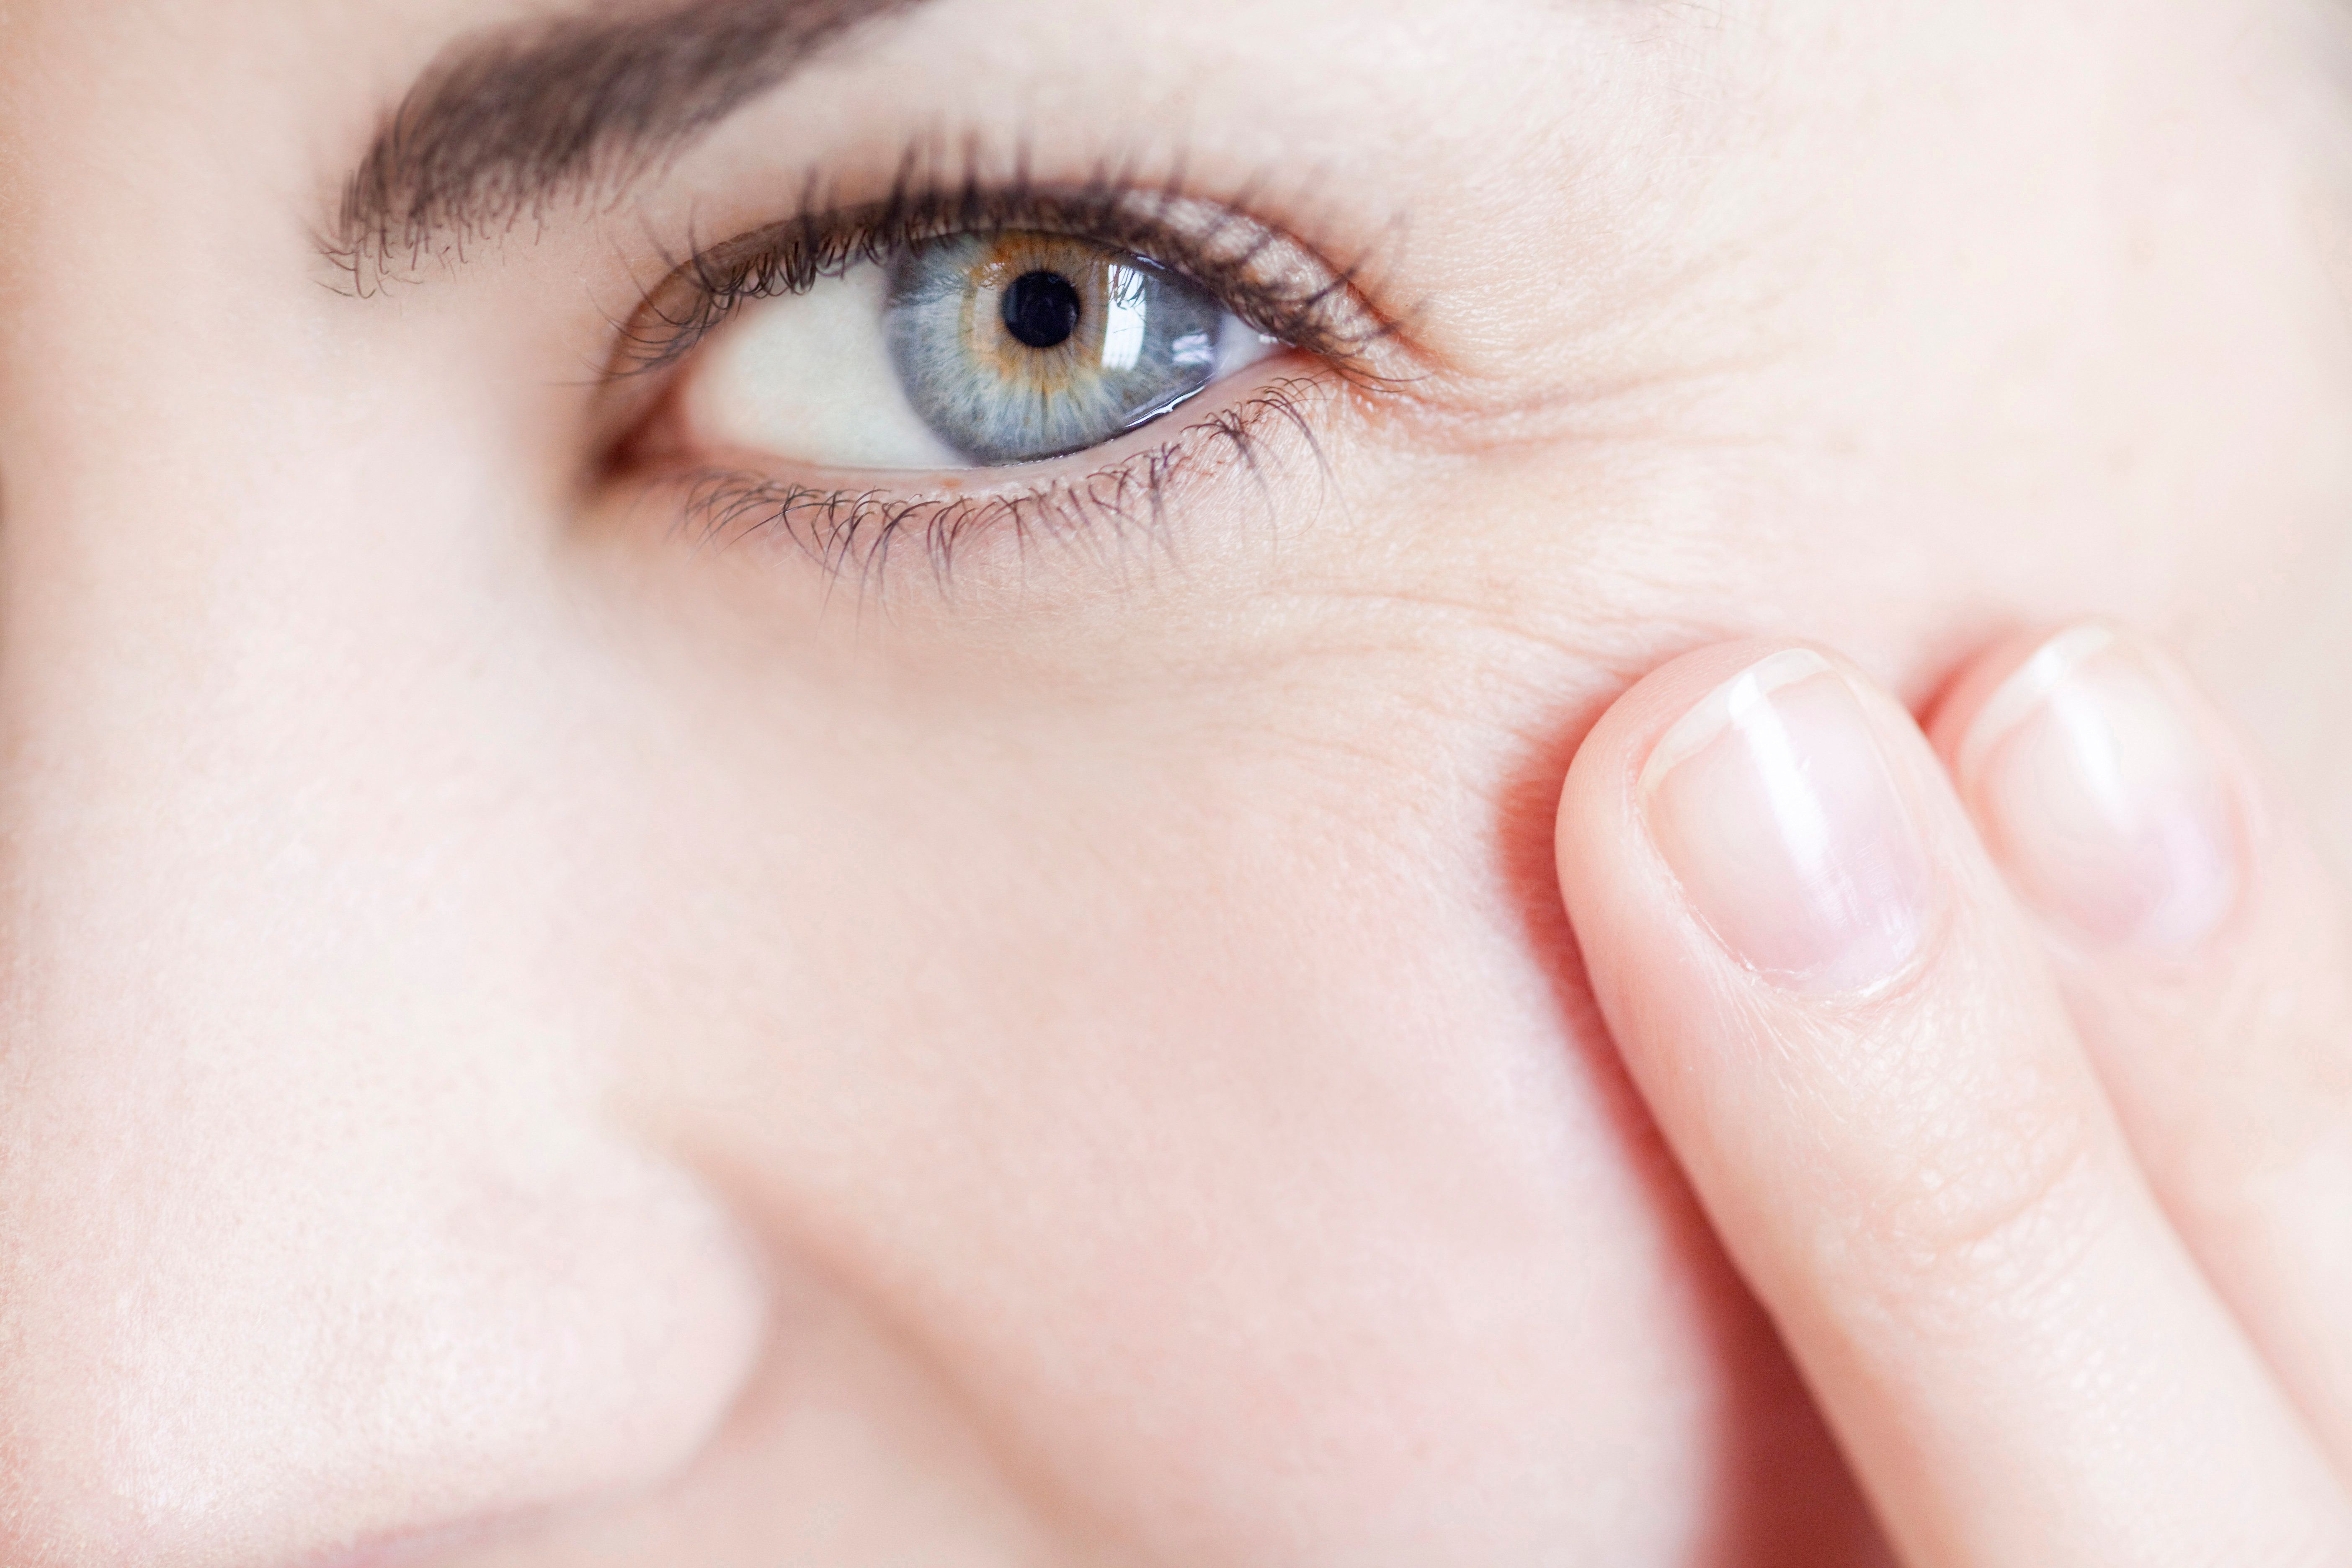 Retinol is often used to treat severe wrinkles and sun damage.